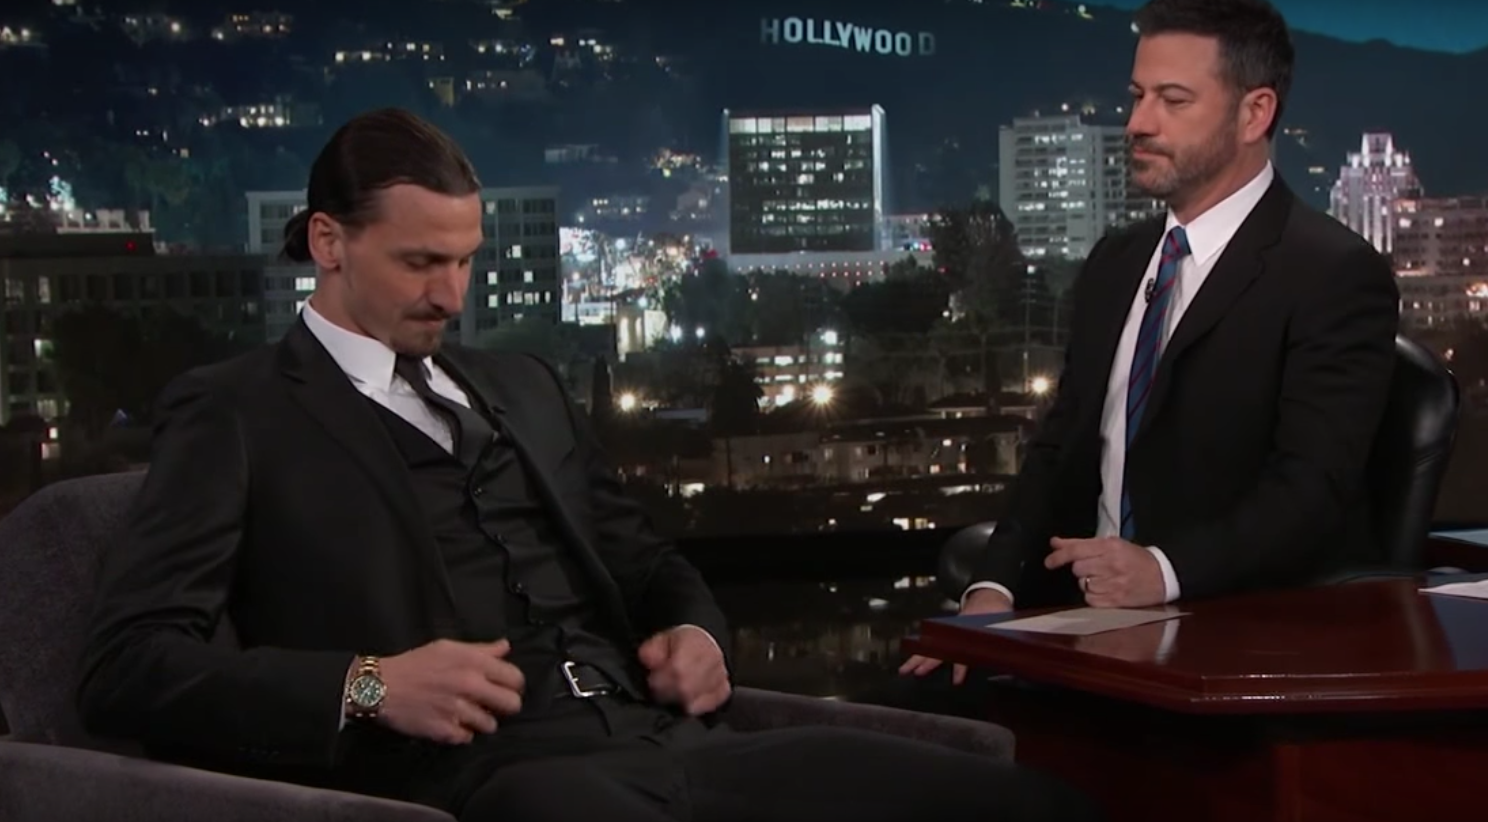 Zlatan Ibrahimovic on Jimmy Kimmel Live